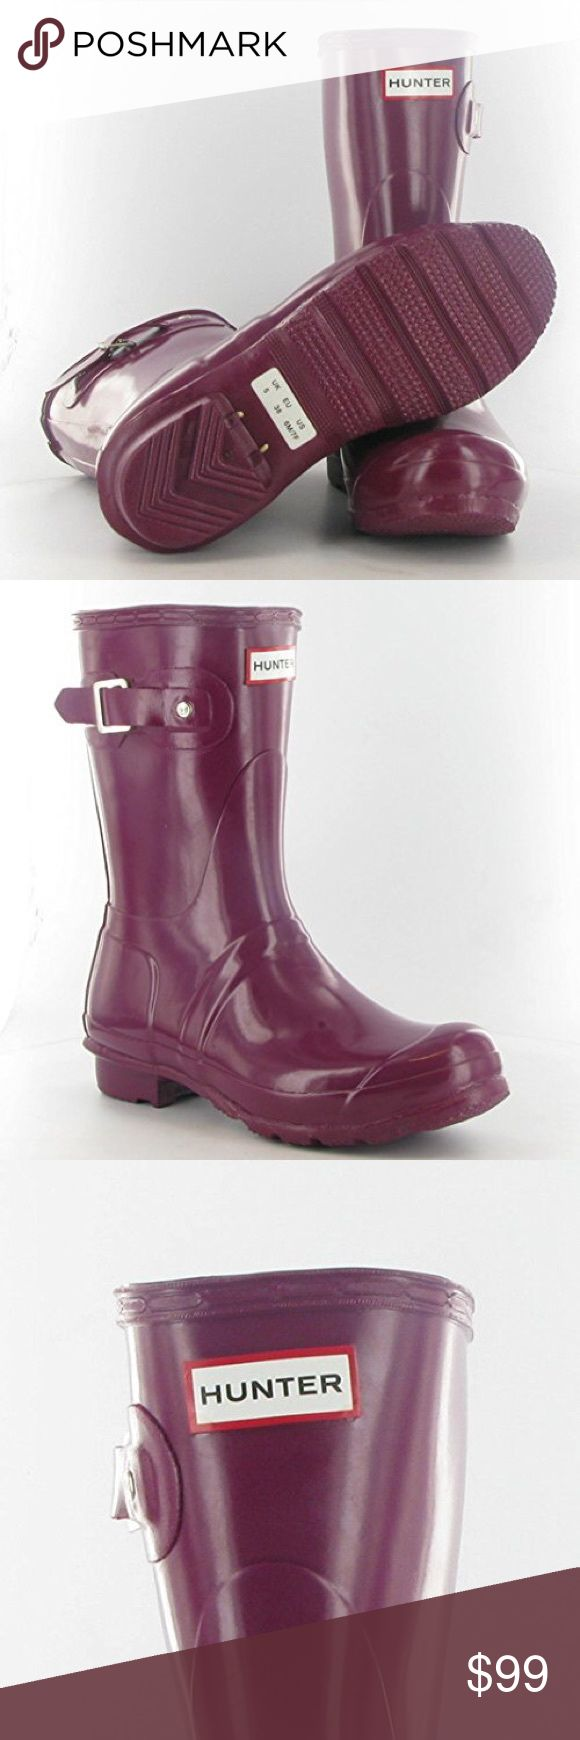 Hunter Women's Original Gloss Short Wellies Violet Hunter Women's Original Gloss Short Wellies Violet W23700  WOMENS HUNTER WELLINGTON BOOTS ORIGINAL SHORT RAIN SNOW WELLIES LADIES   Hunter Women's Original Gloss Short Wellies Violet W23700 size 7 This short rain boot is handcrafted from 28 parts, in the same form as the Hunter Original Tall, with a high gloss finish.  Handcrafted Waterproof Textile lining Original calendered outsole Adjustable strap to enhance fit Natural rubber NO TRADES…